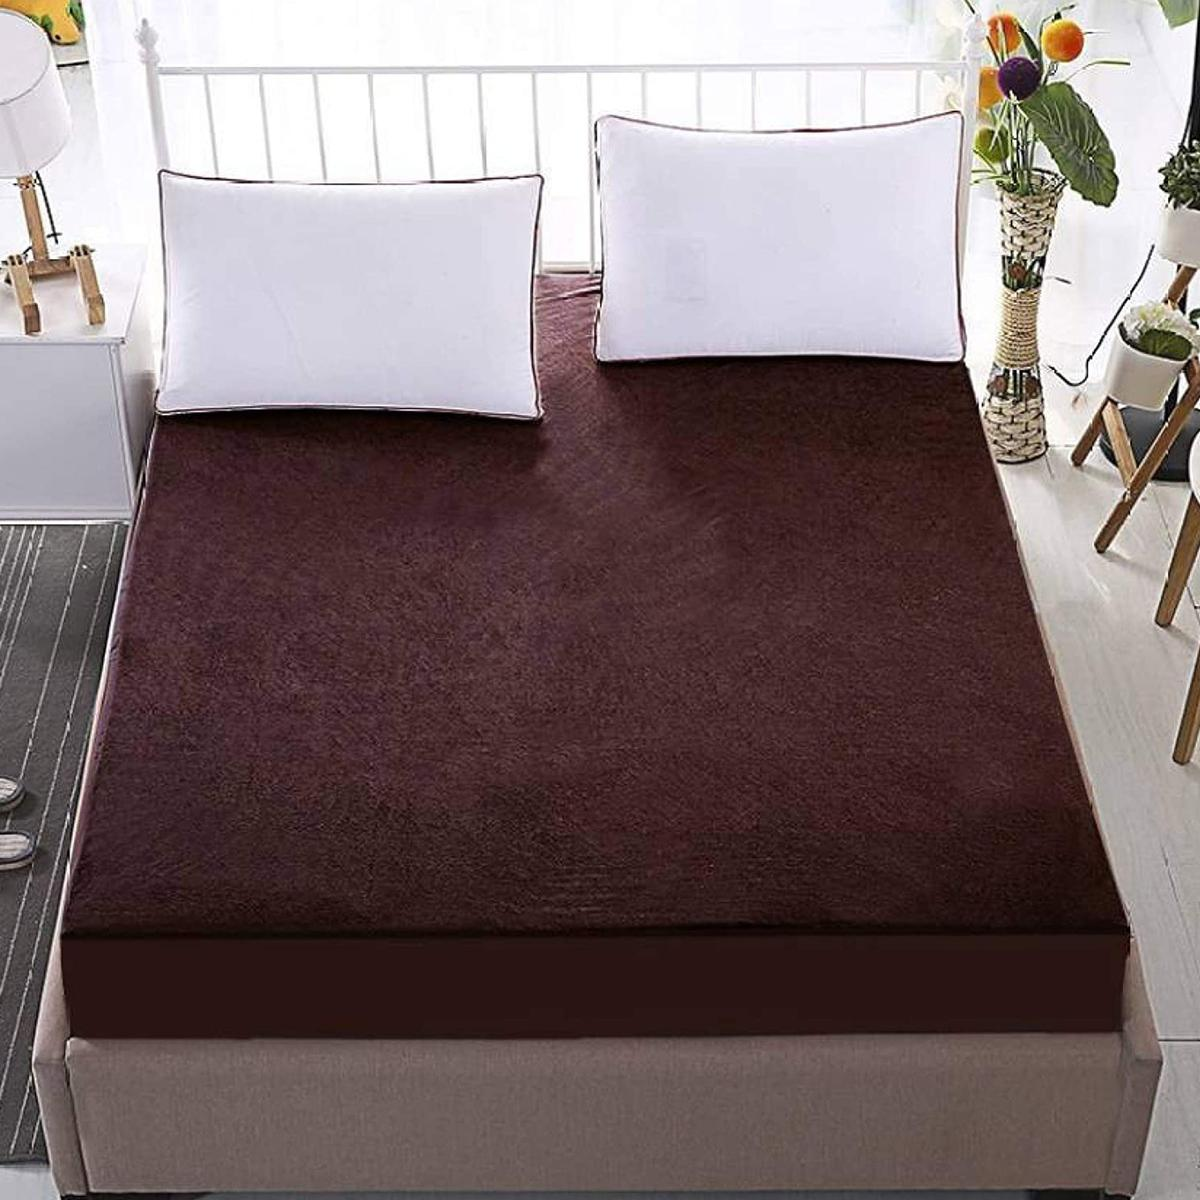 eCraftIndia - 100% Waterproof Terry Cotton Fitted Mattress Protector for King Size Bed (78 x 72 Inch, Brown)